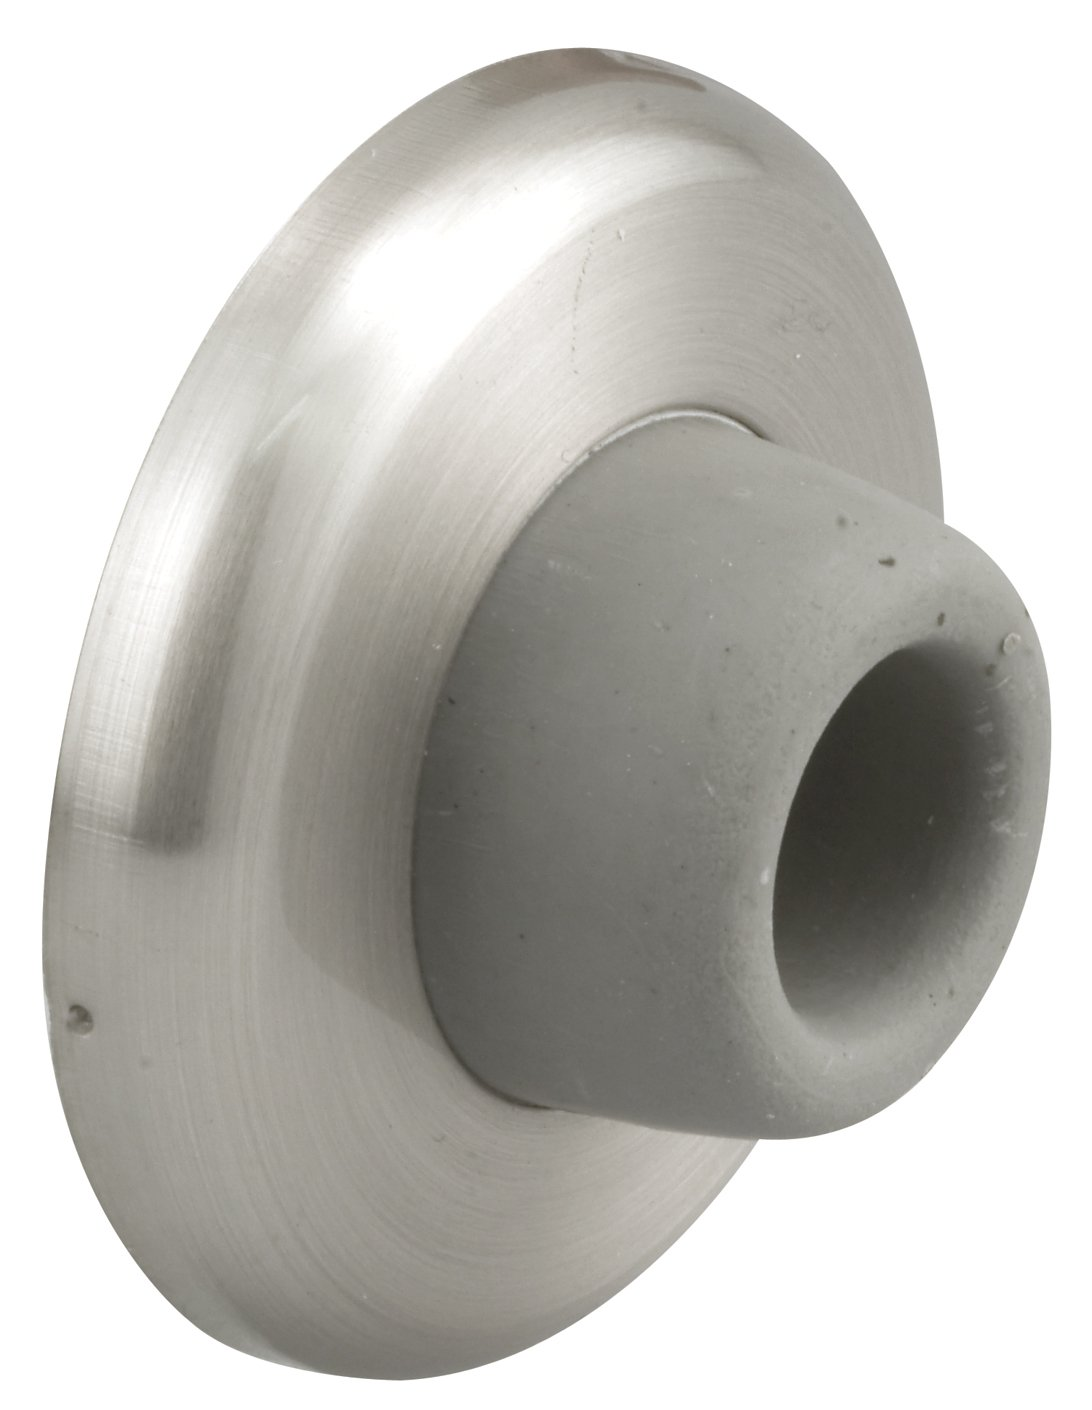 """Prime-Line J 4540 Wall Stop – Protects Walls from Door Knob Damage – 2-1/2"""" Outside Diameter Stainless Steel Cover with 1-1/8"""" Gray Round Rubber Bumper – Easy To Install by PRIME-LINE (Image #1)"""